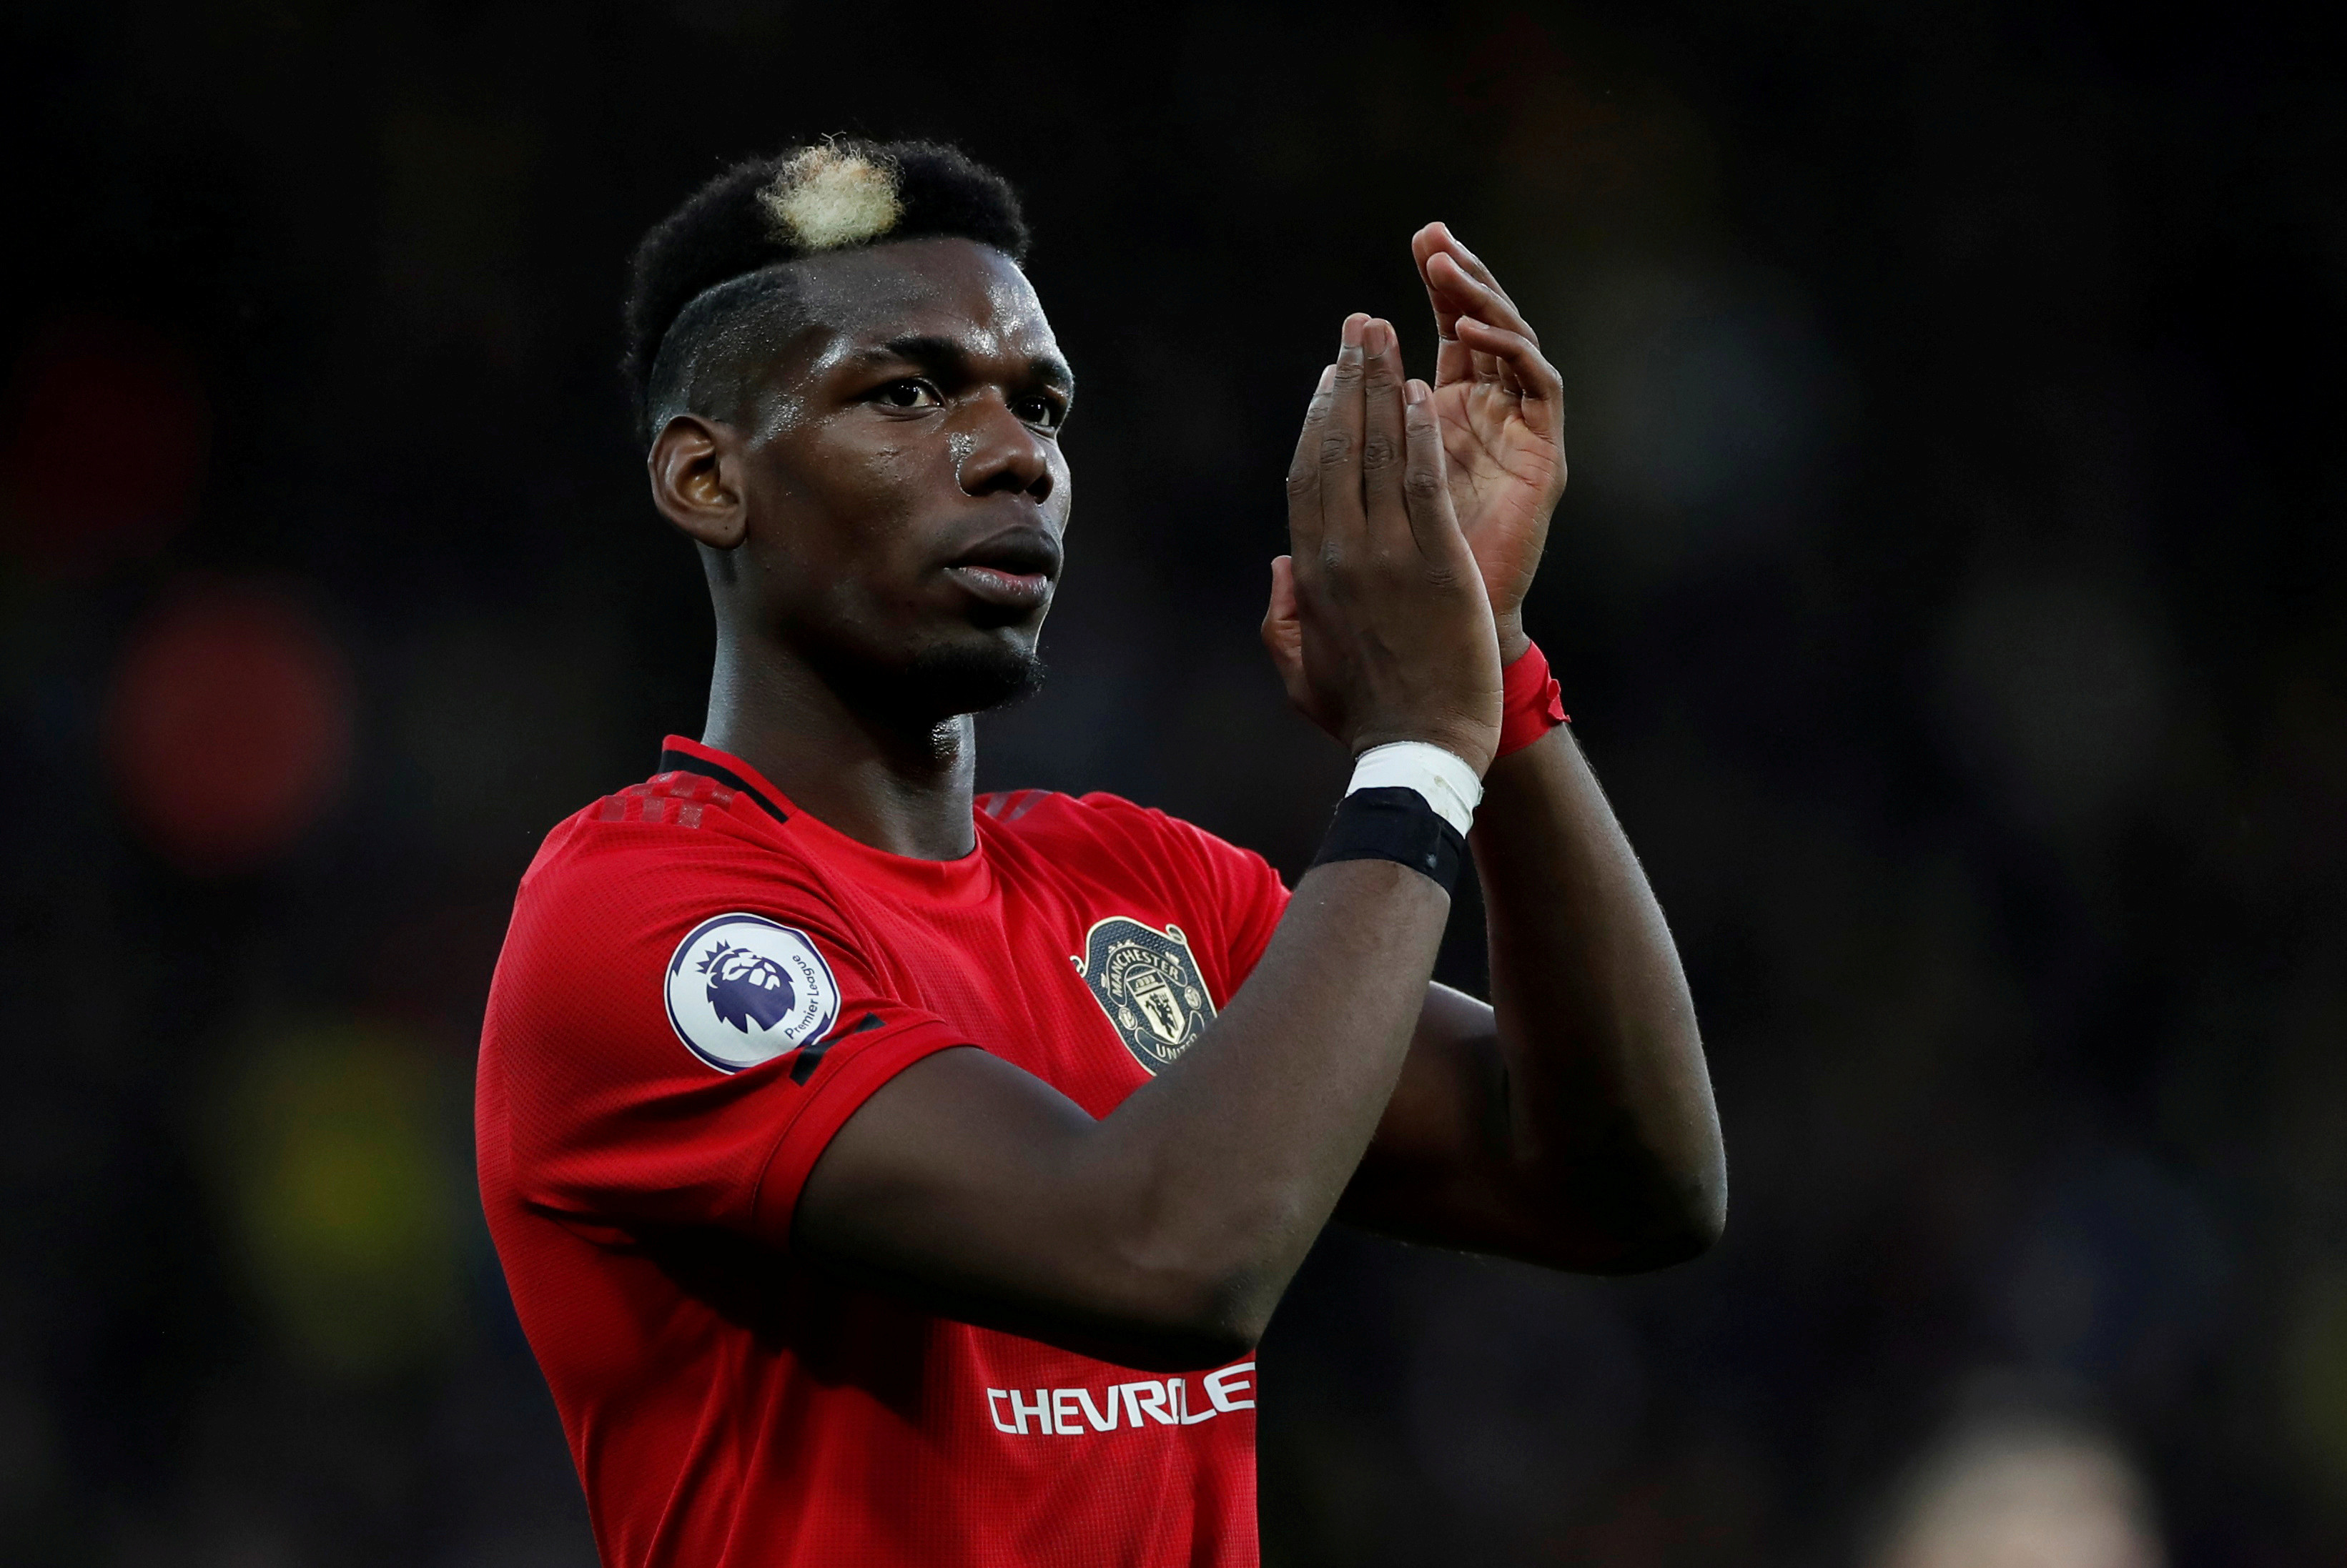 Have Real Madrid closed the door on Paul Pogba? - Bóng Đá